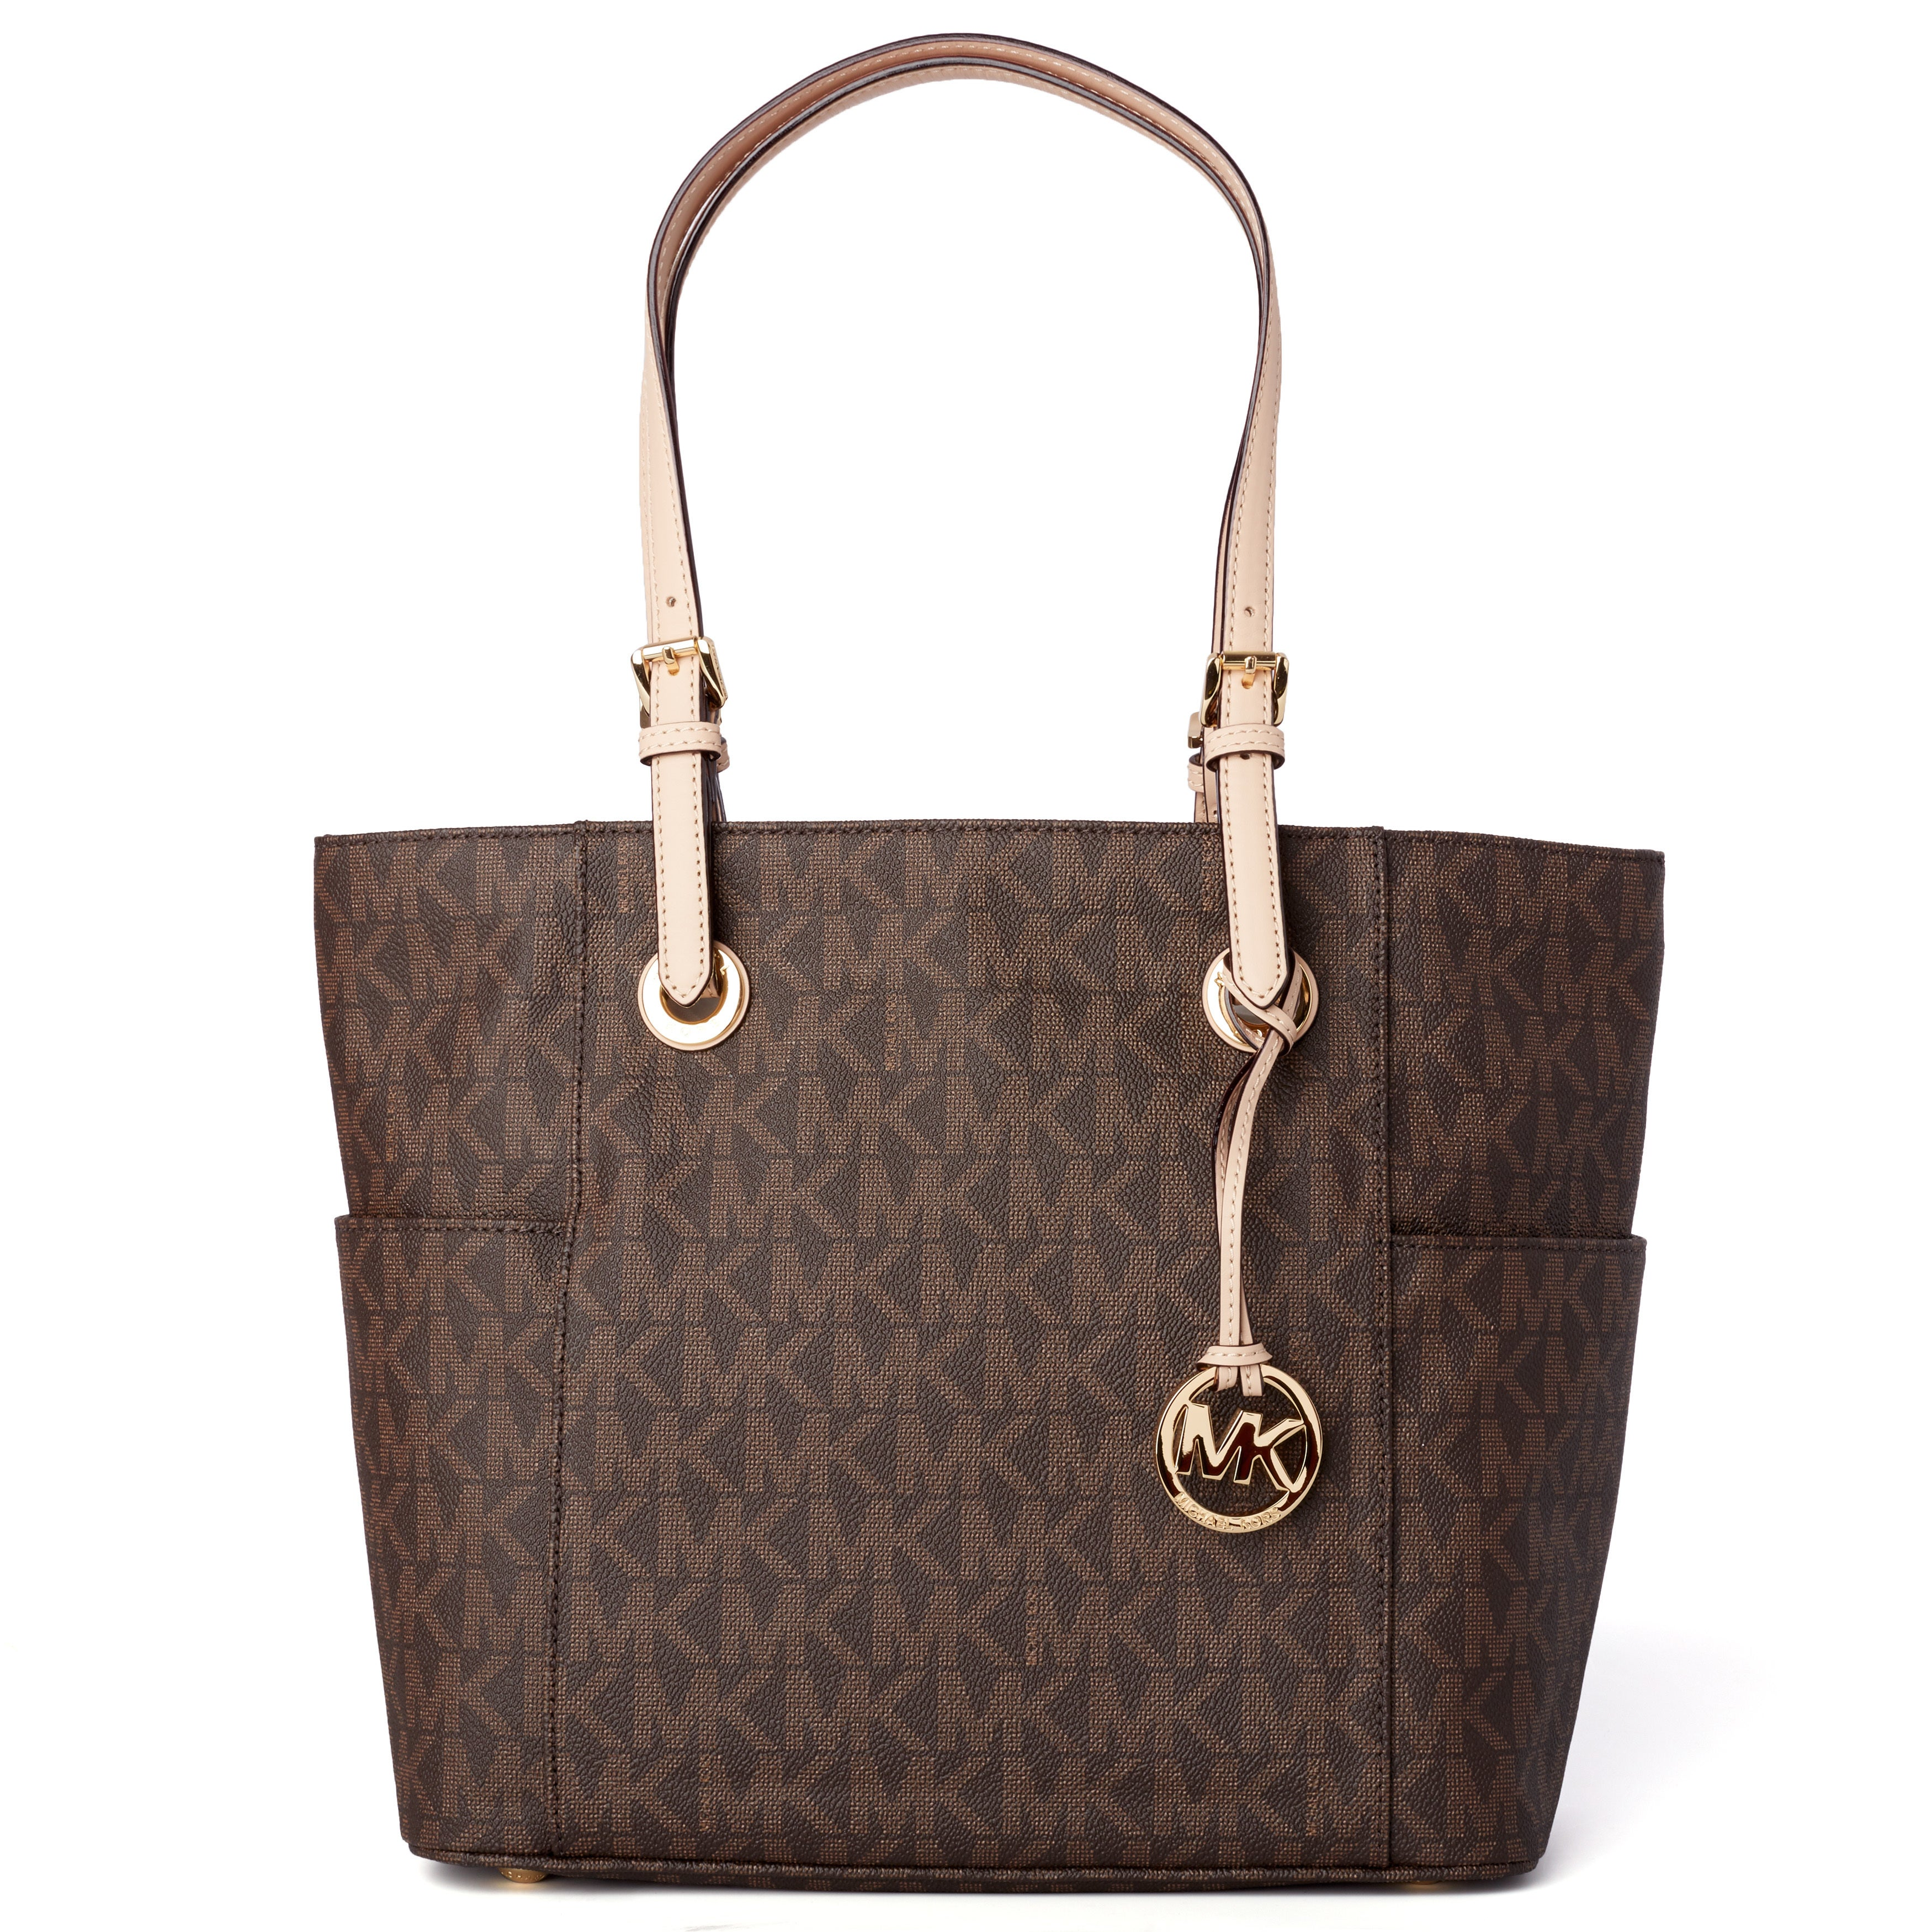 325afa968ef8 Shop Michael Kors Jet Set East West Brown Signature Tote Bag - Free  Shipping Today - Overstock - 7881346